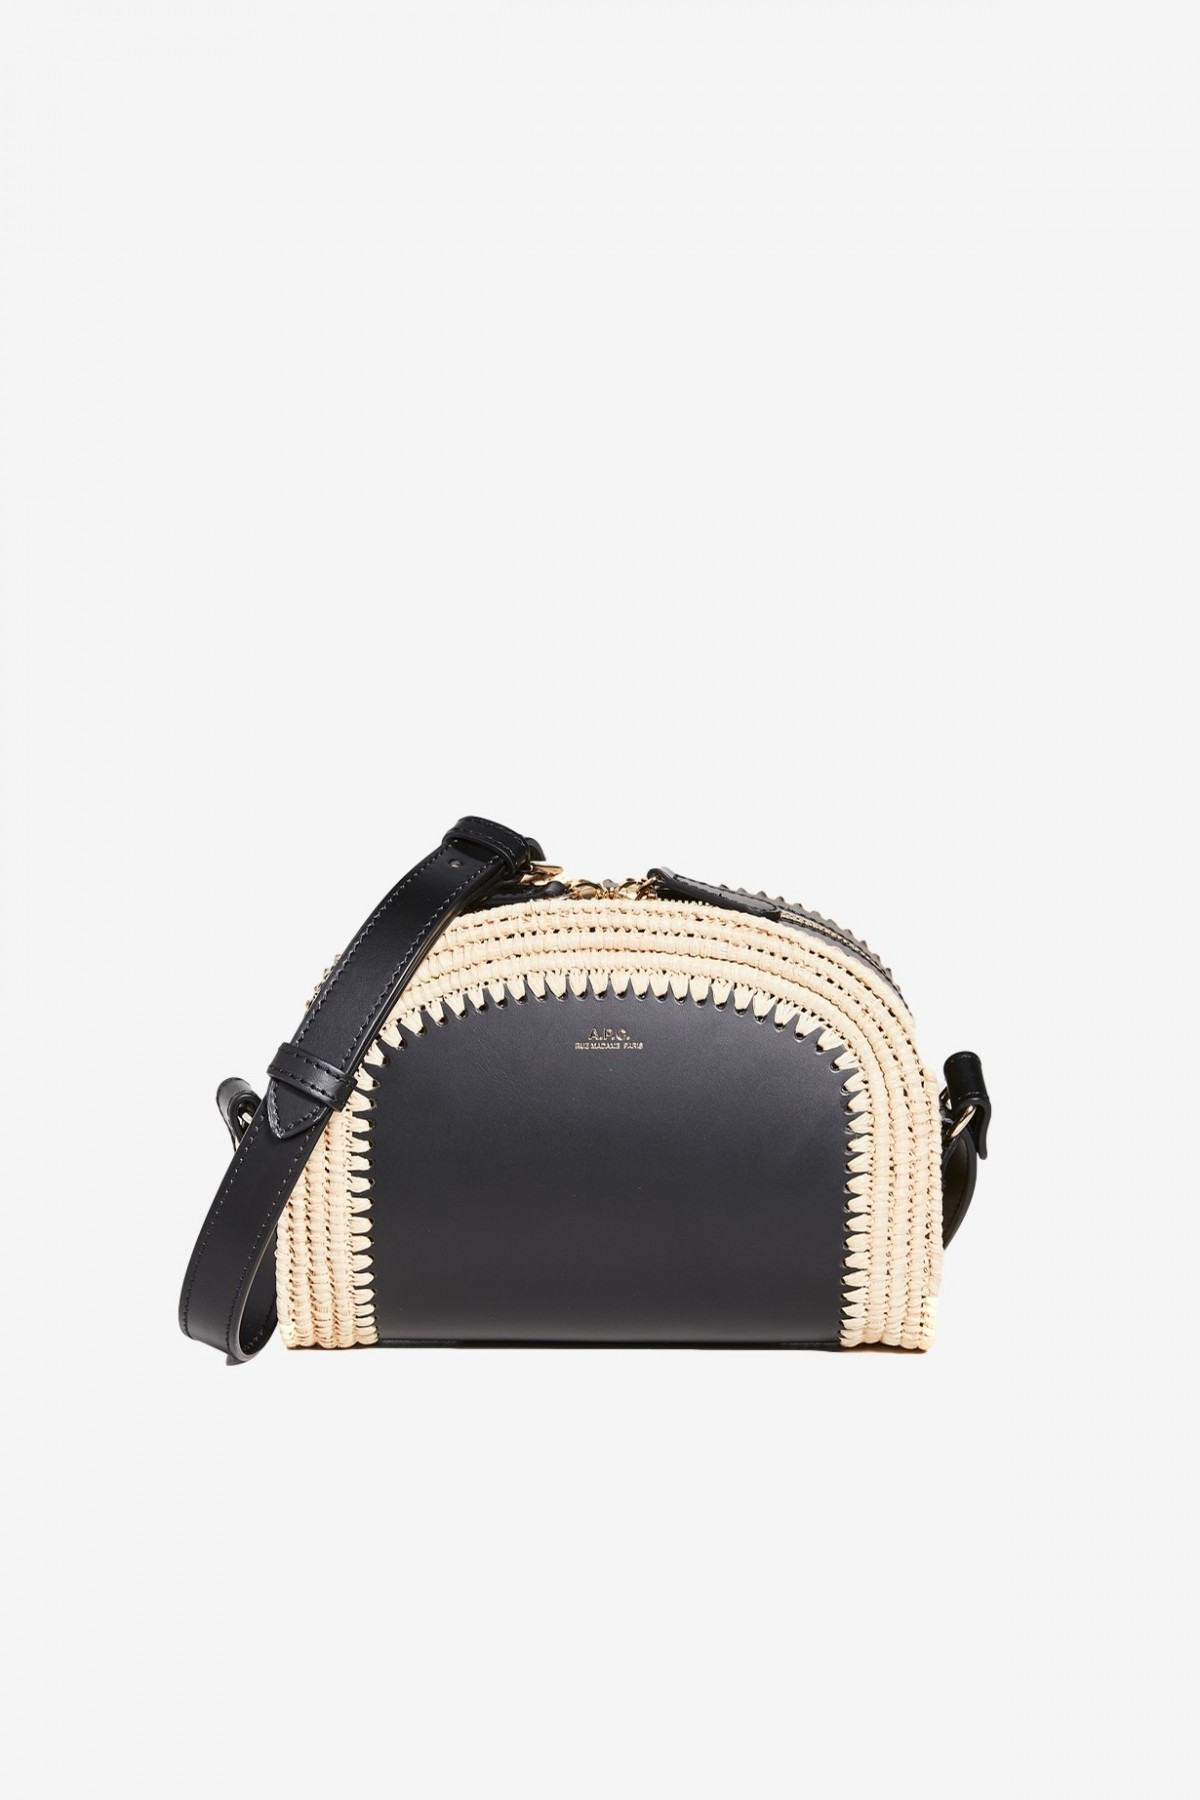 A.P.C. Sac Demi Lune Mini in Raffia Black